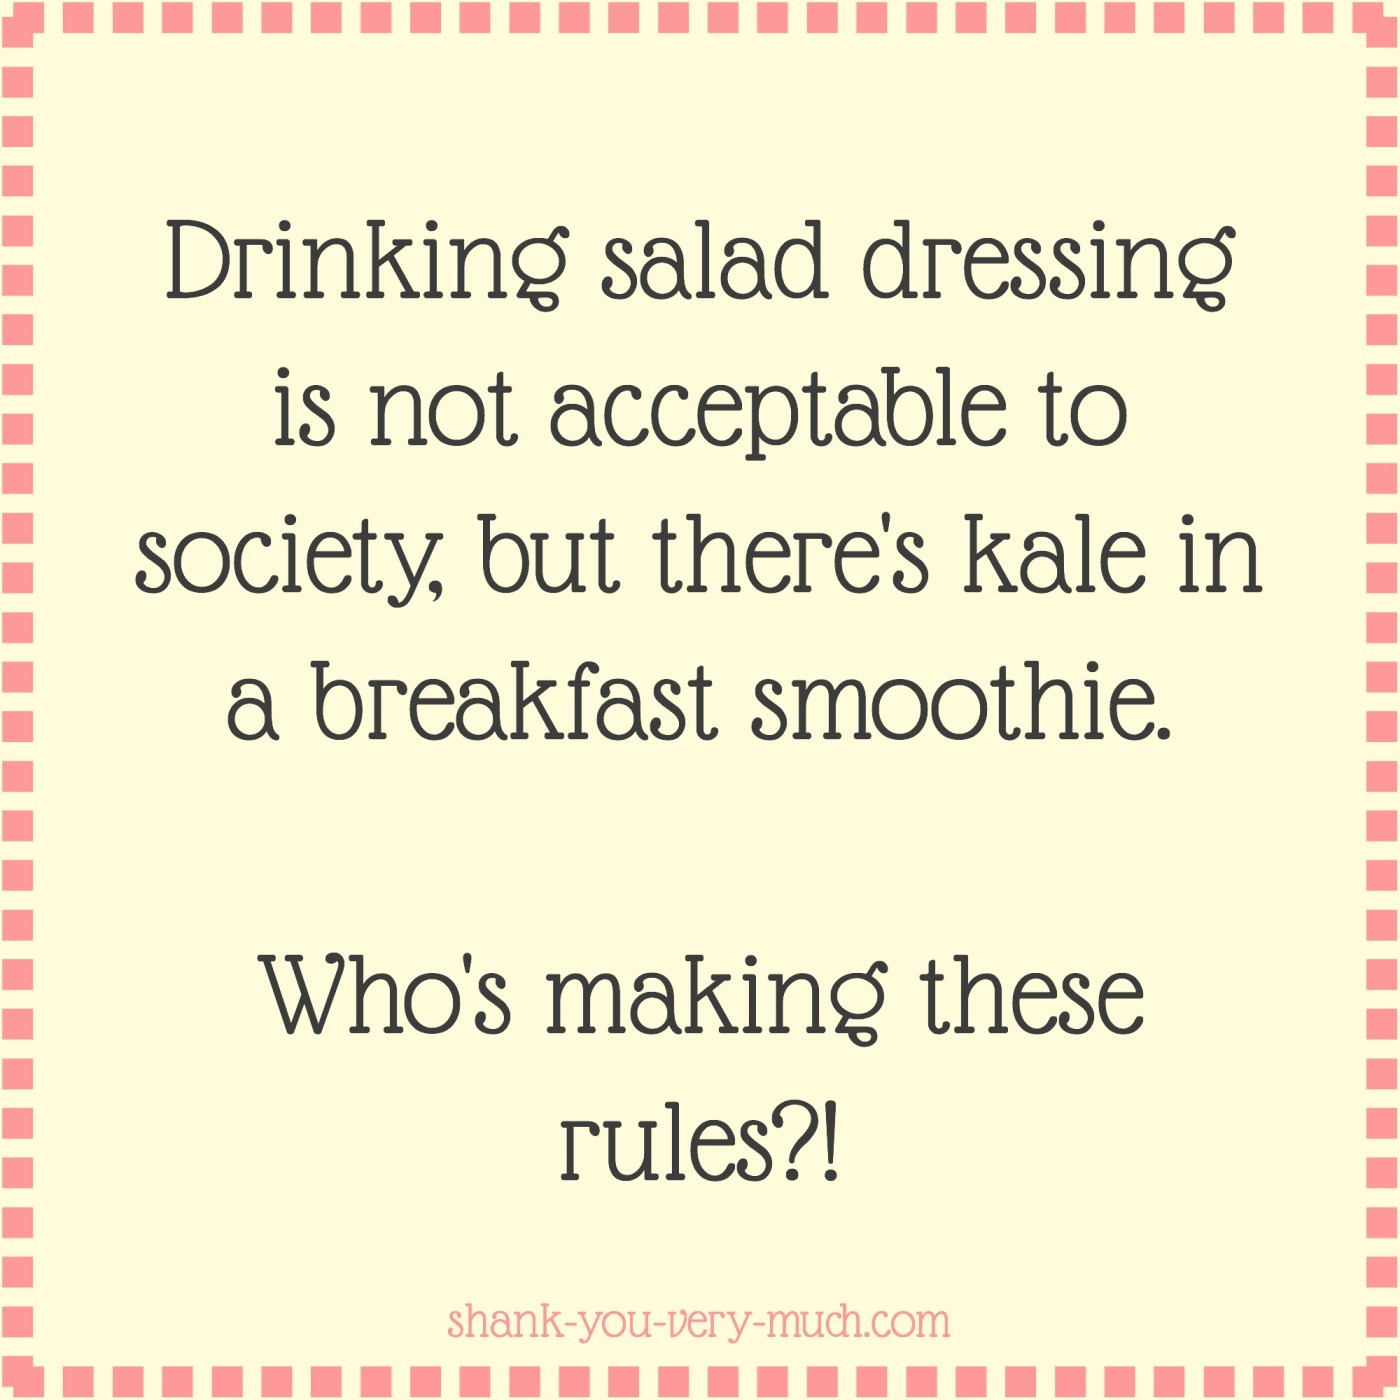 a text box that reads 'drinking salad dressing is not acceptable to society, but there's kale in a breakfast smoothie. who's making these rules?!'